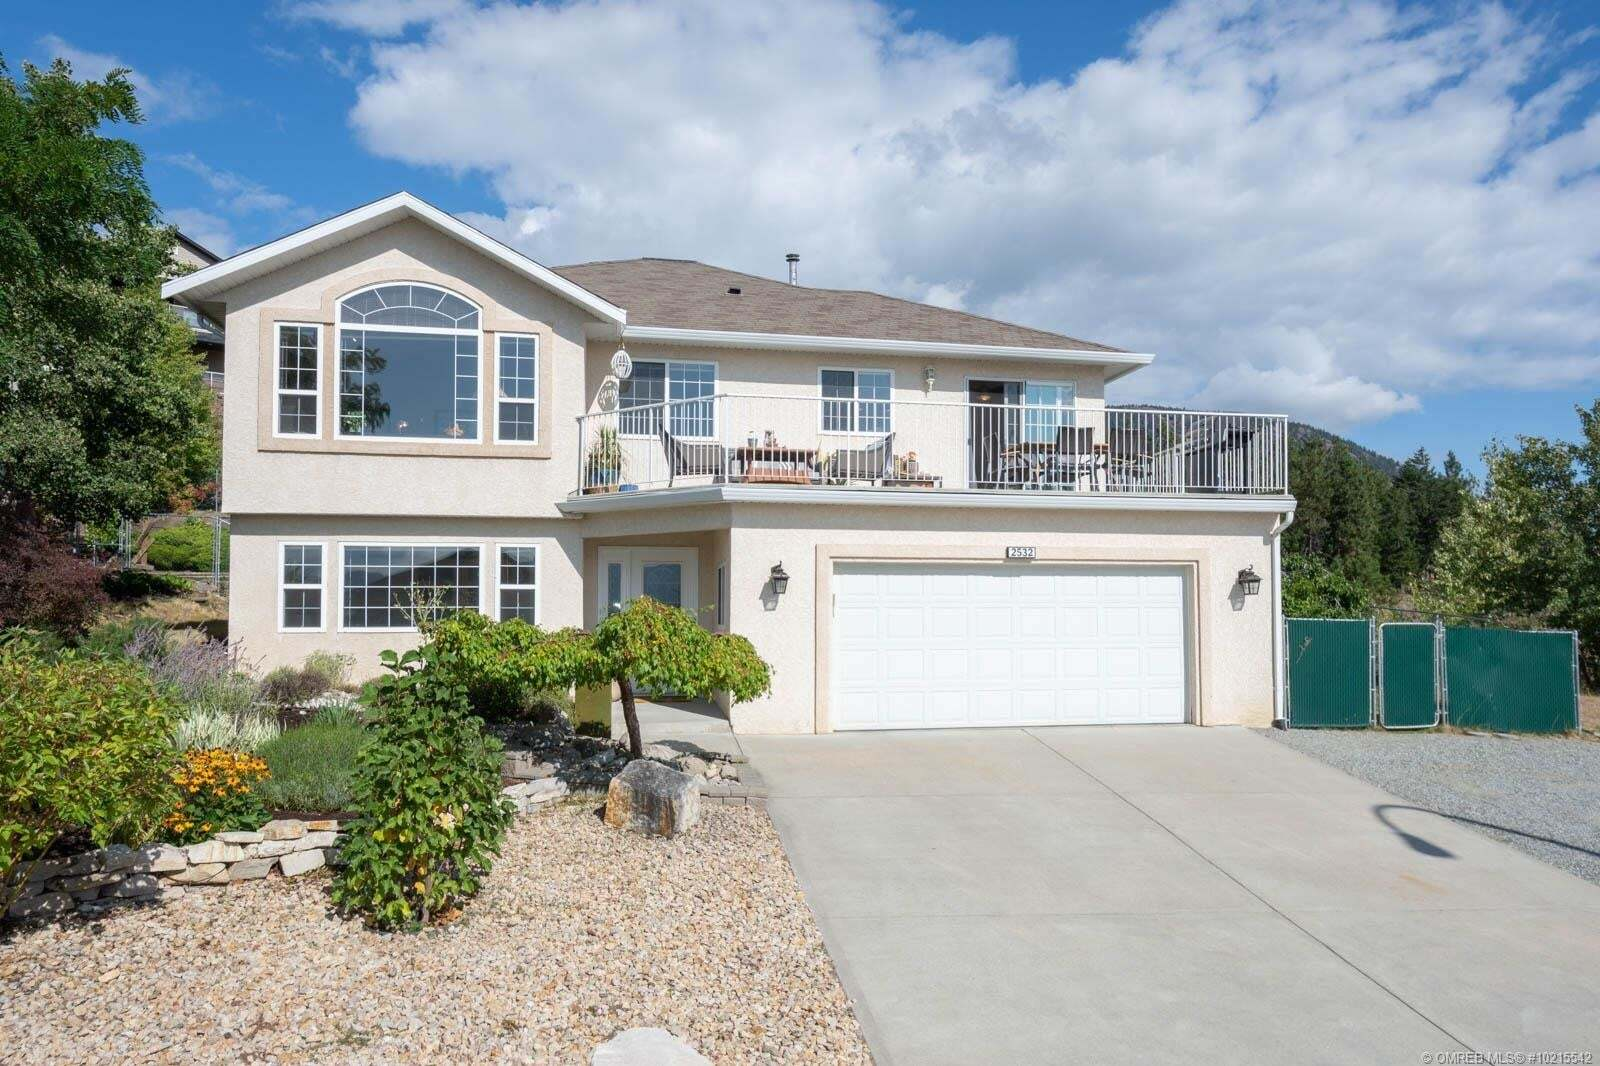 House for sale at 2532 Wild Horse Dr West Kelowna British Columbia - MLS: 10215542